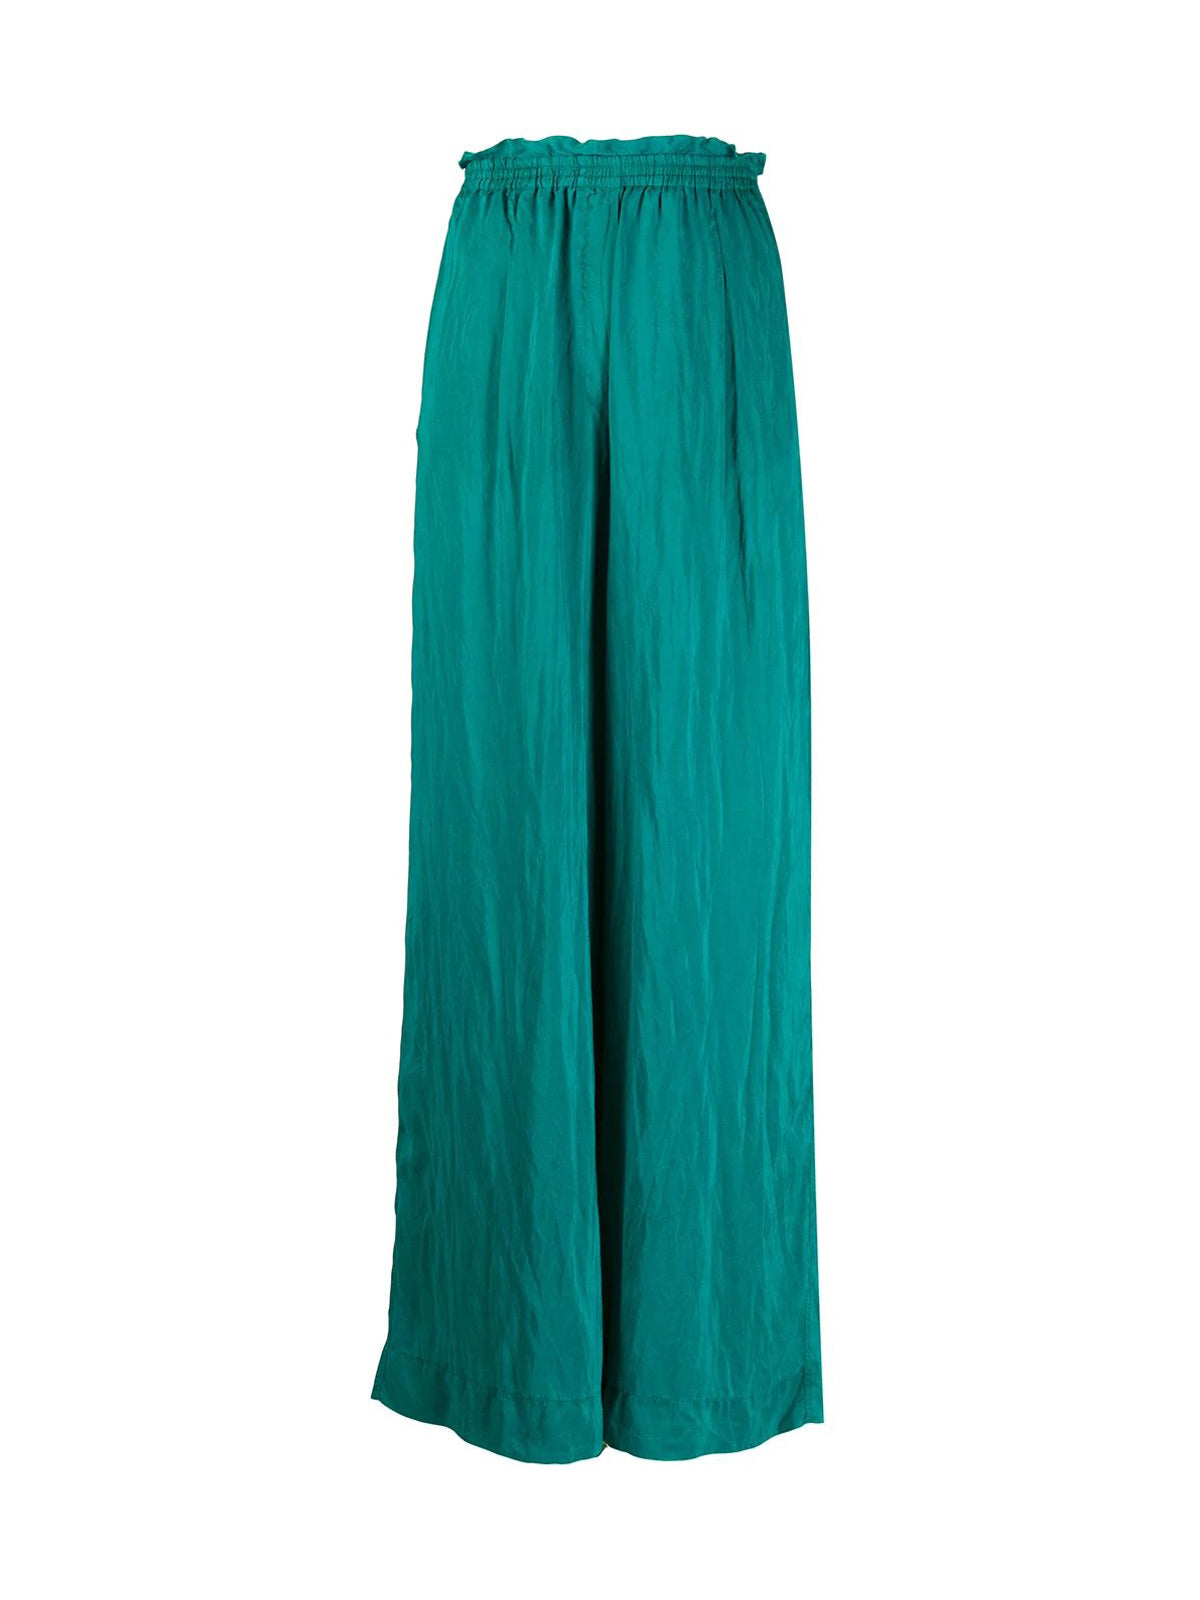 loose-fitting habotai-silk trousers